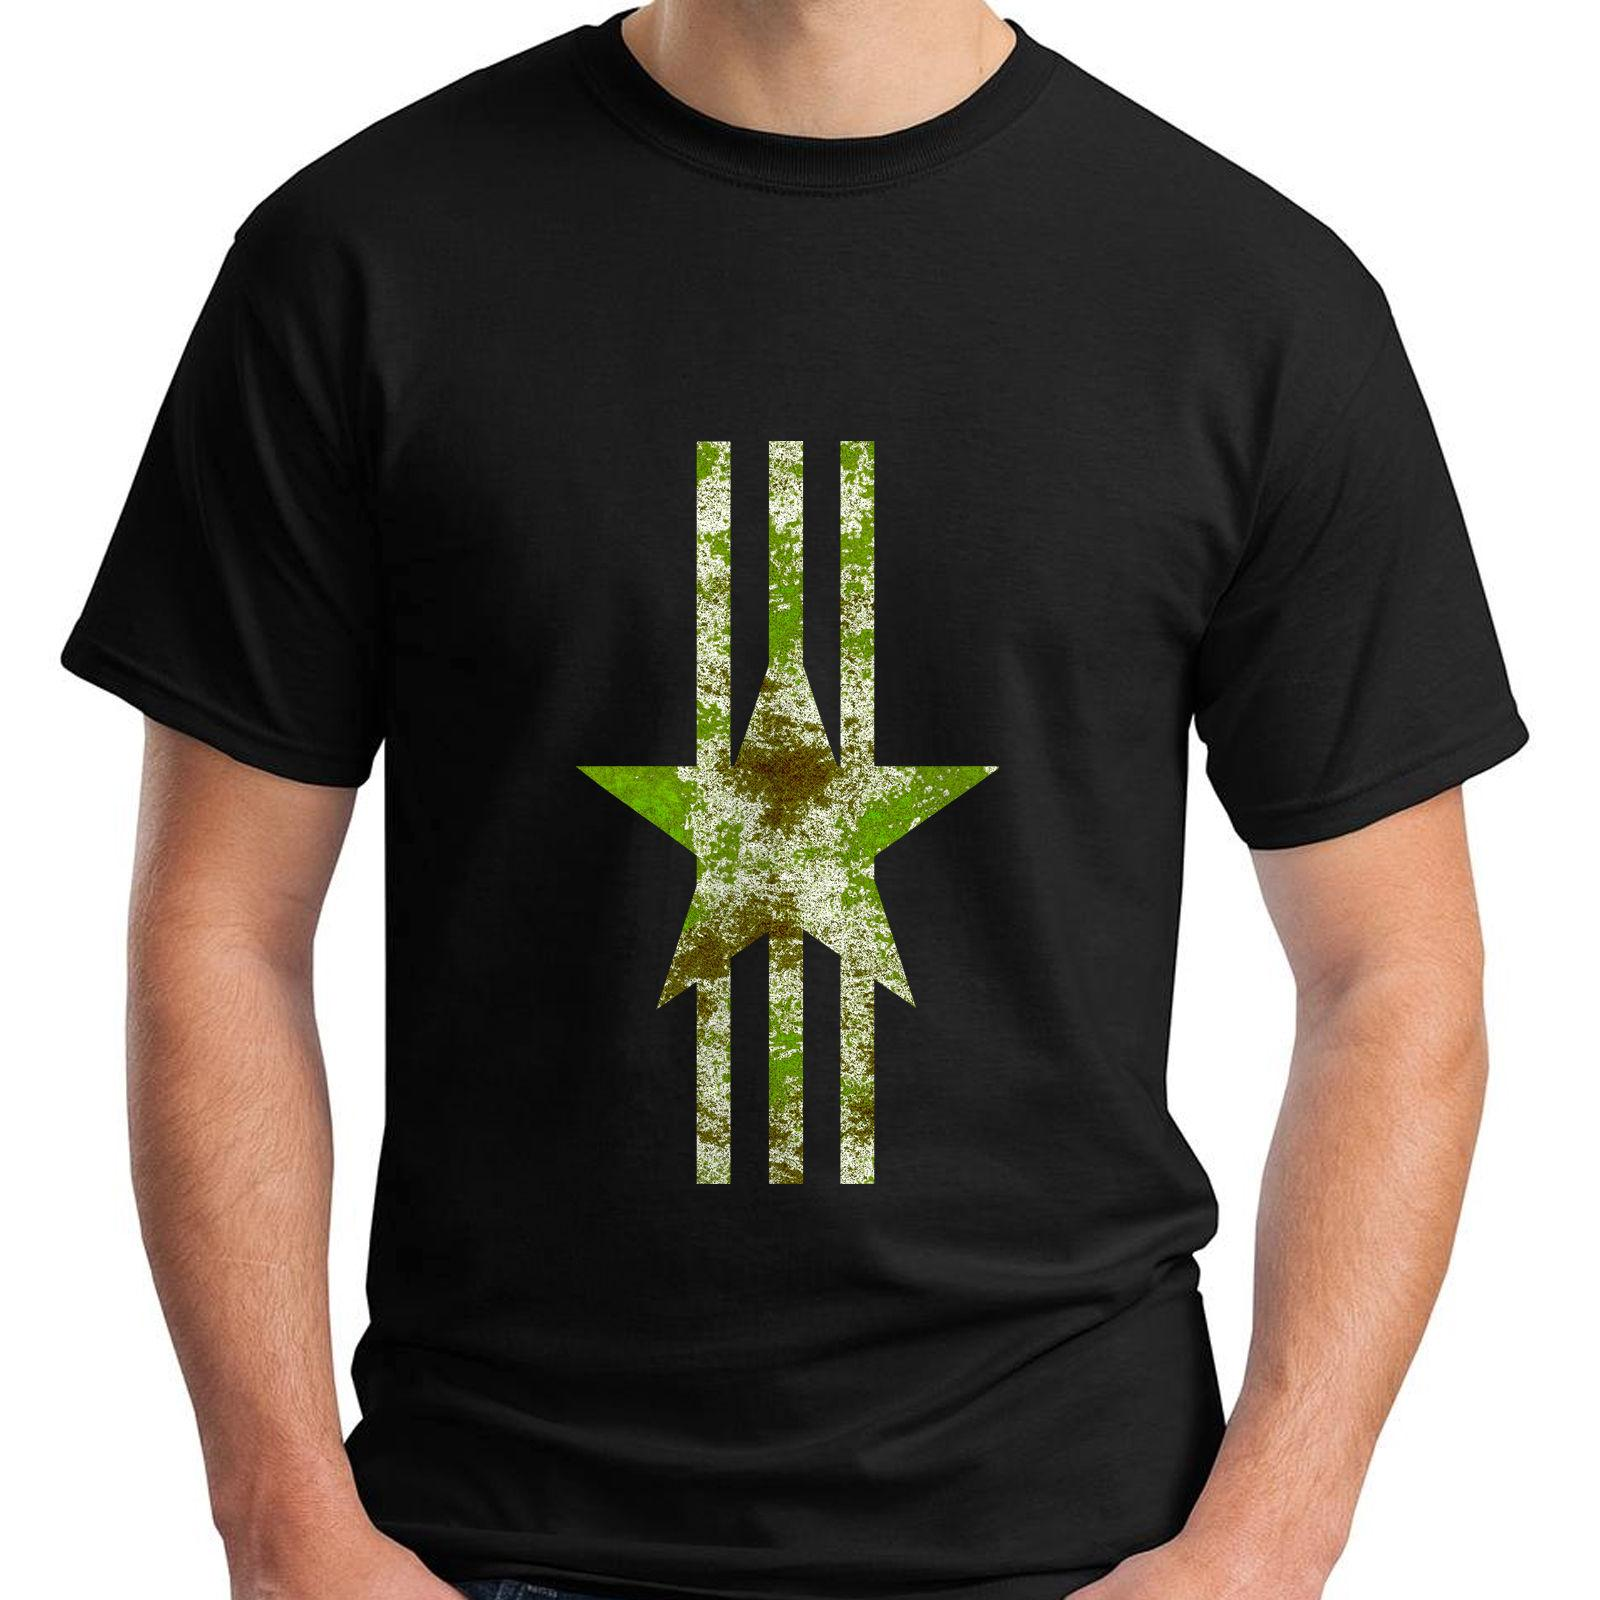 cec08bbd658ae New Military Green Camo Star Logo White Stripes Conservative Men S Black T  Shirt Cool T Shirts Design Designs Shirts From Down2lift